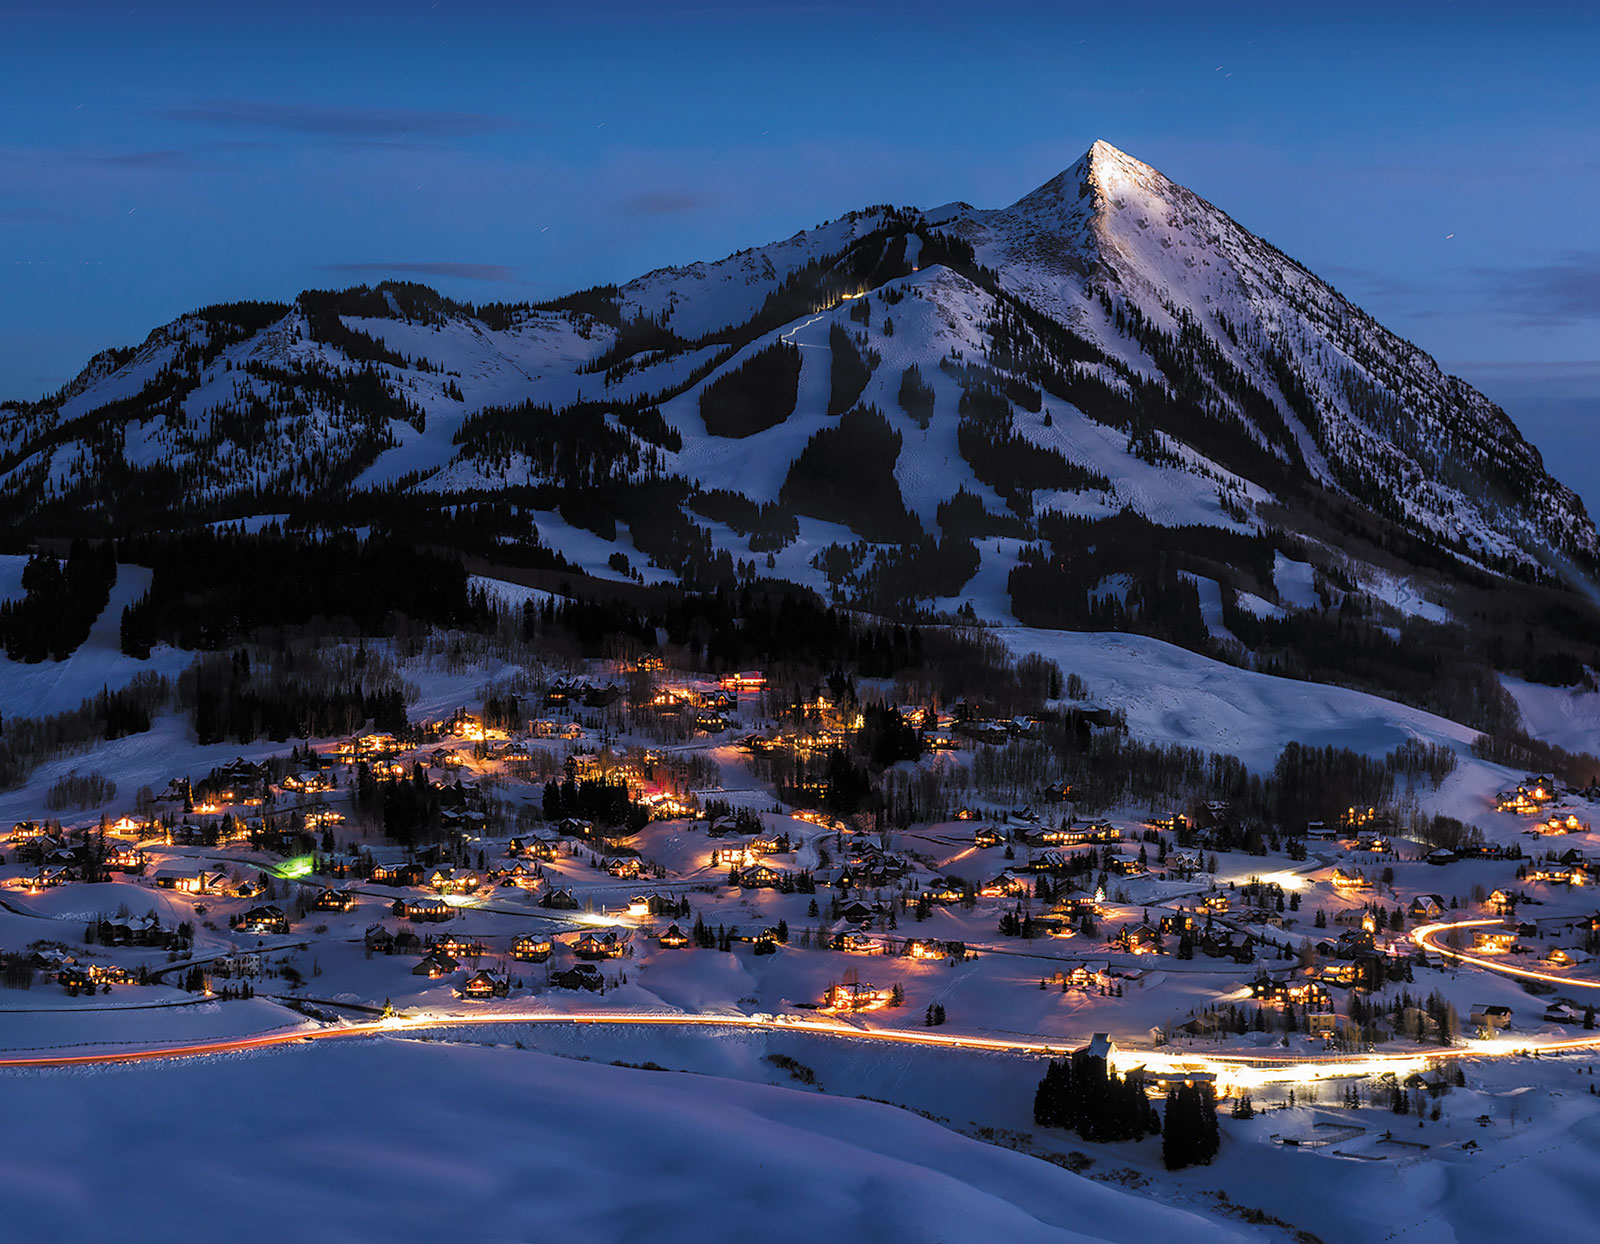 An aerial view of Crested Butte, Colorado